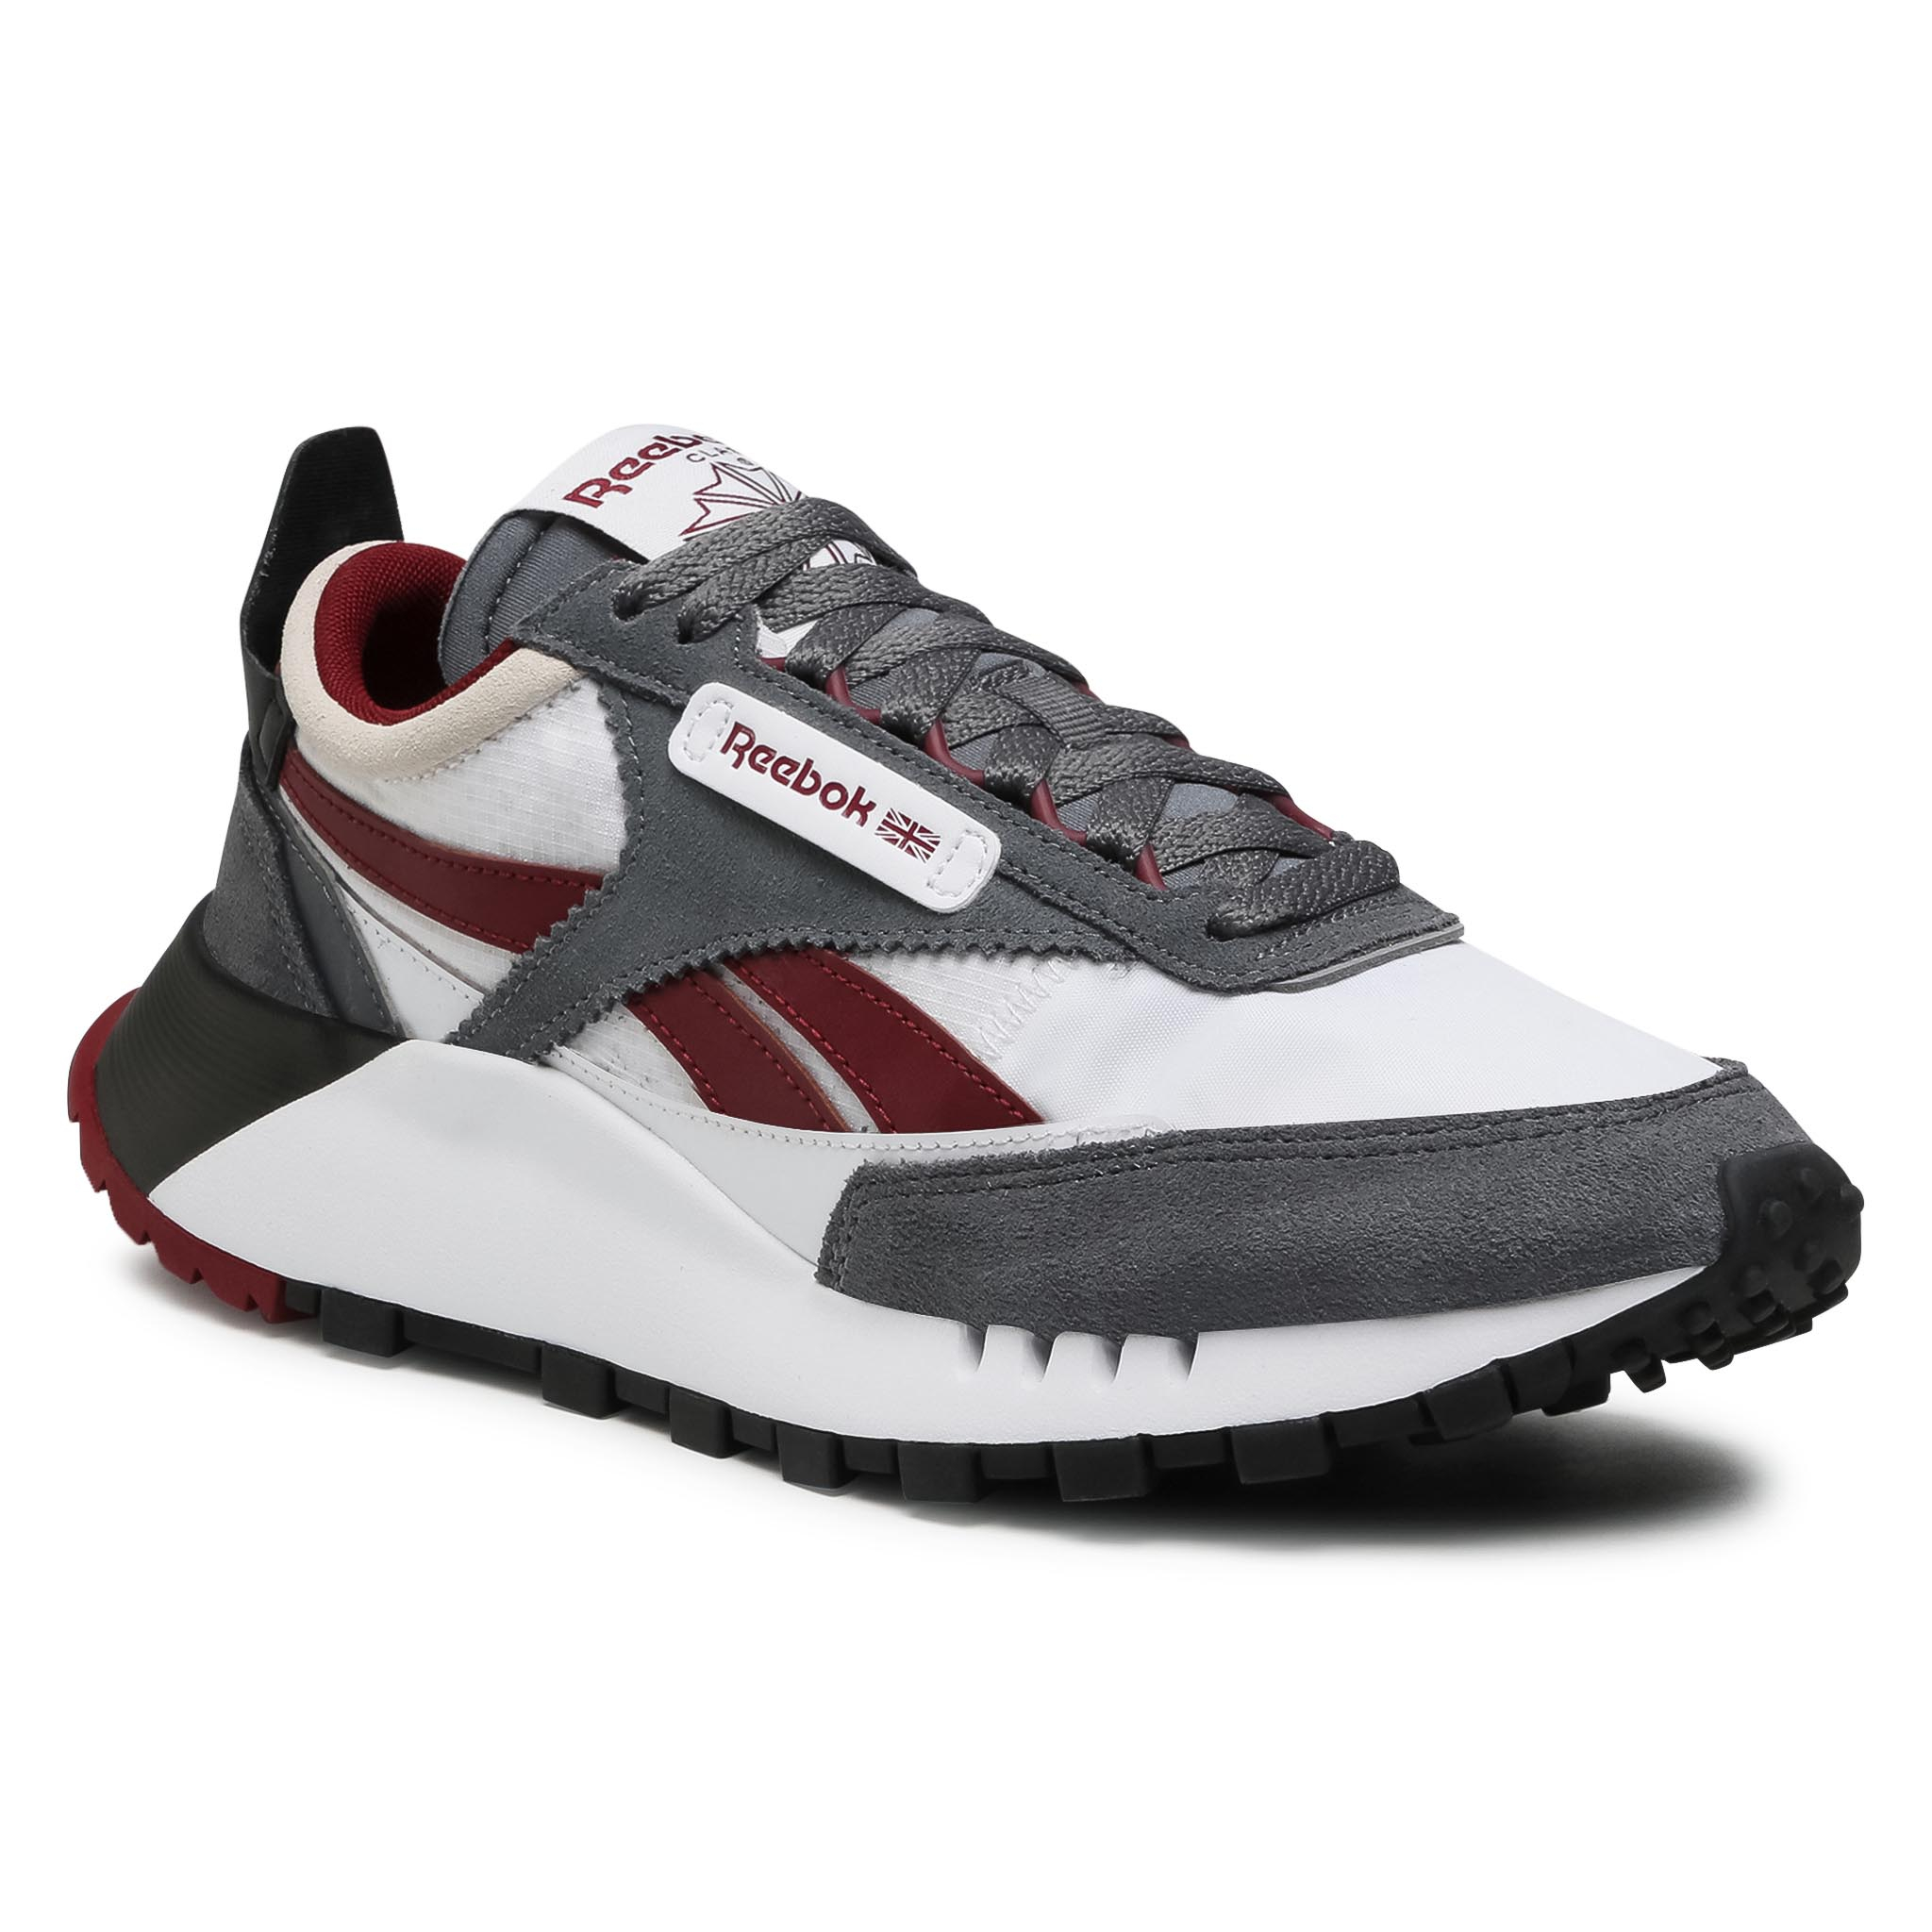 Batai Reebok - Cl Legacy FY7748 Cdgry6/Ftwwht/Msilve